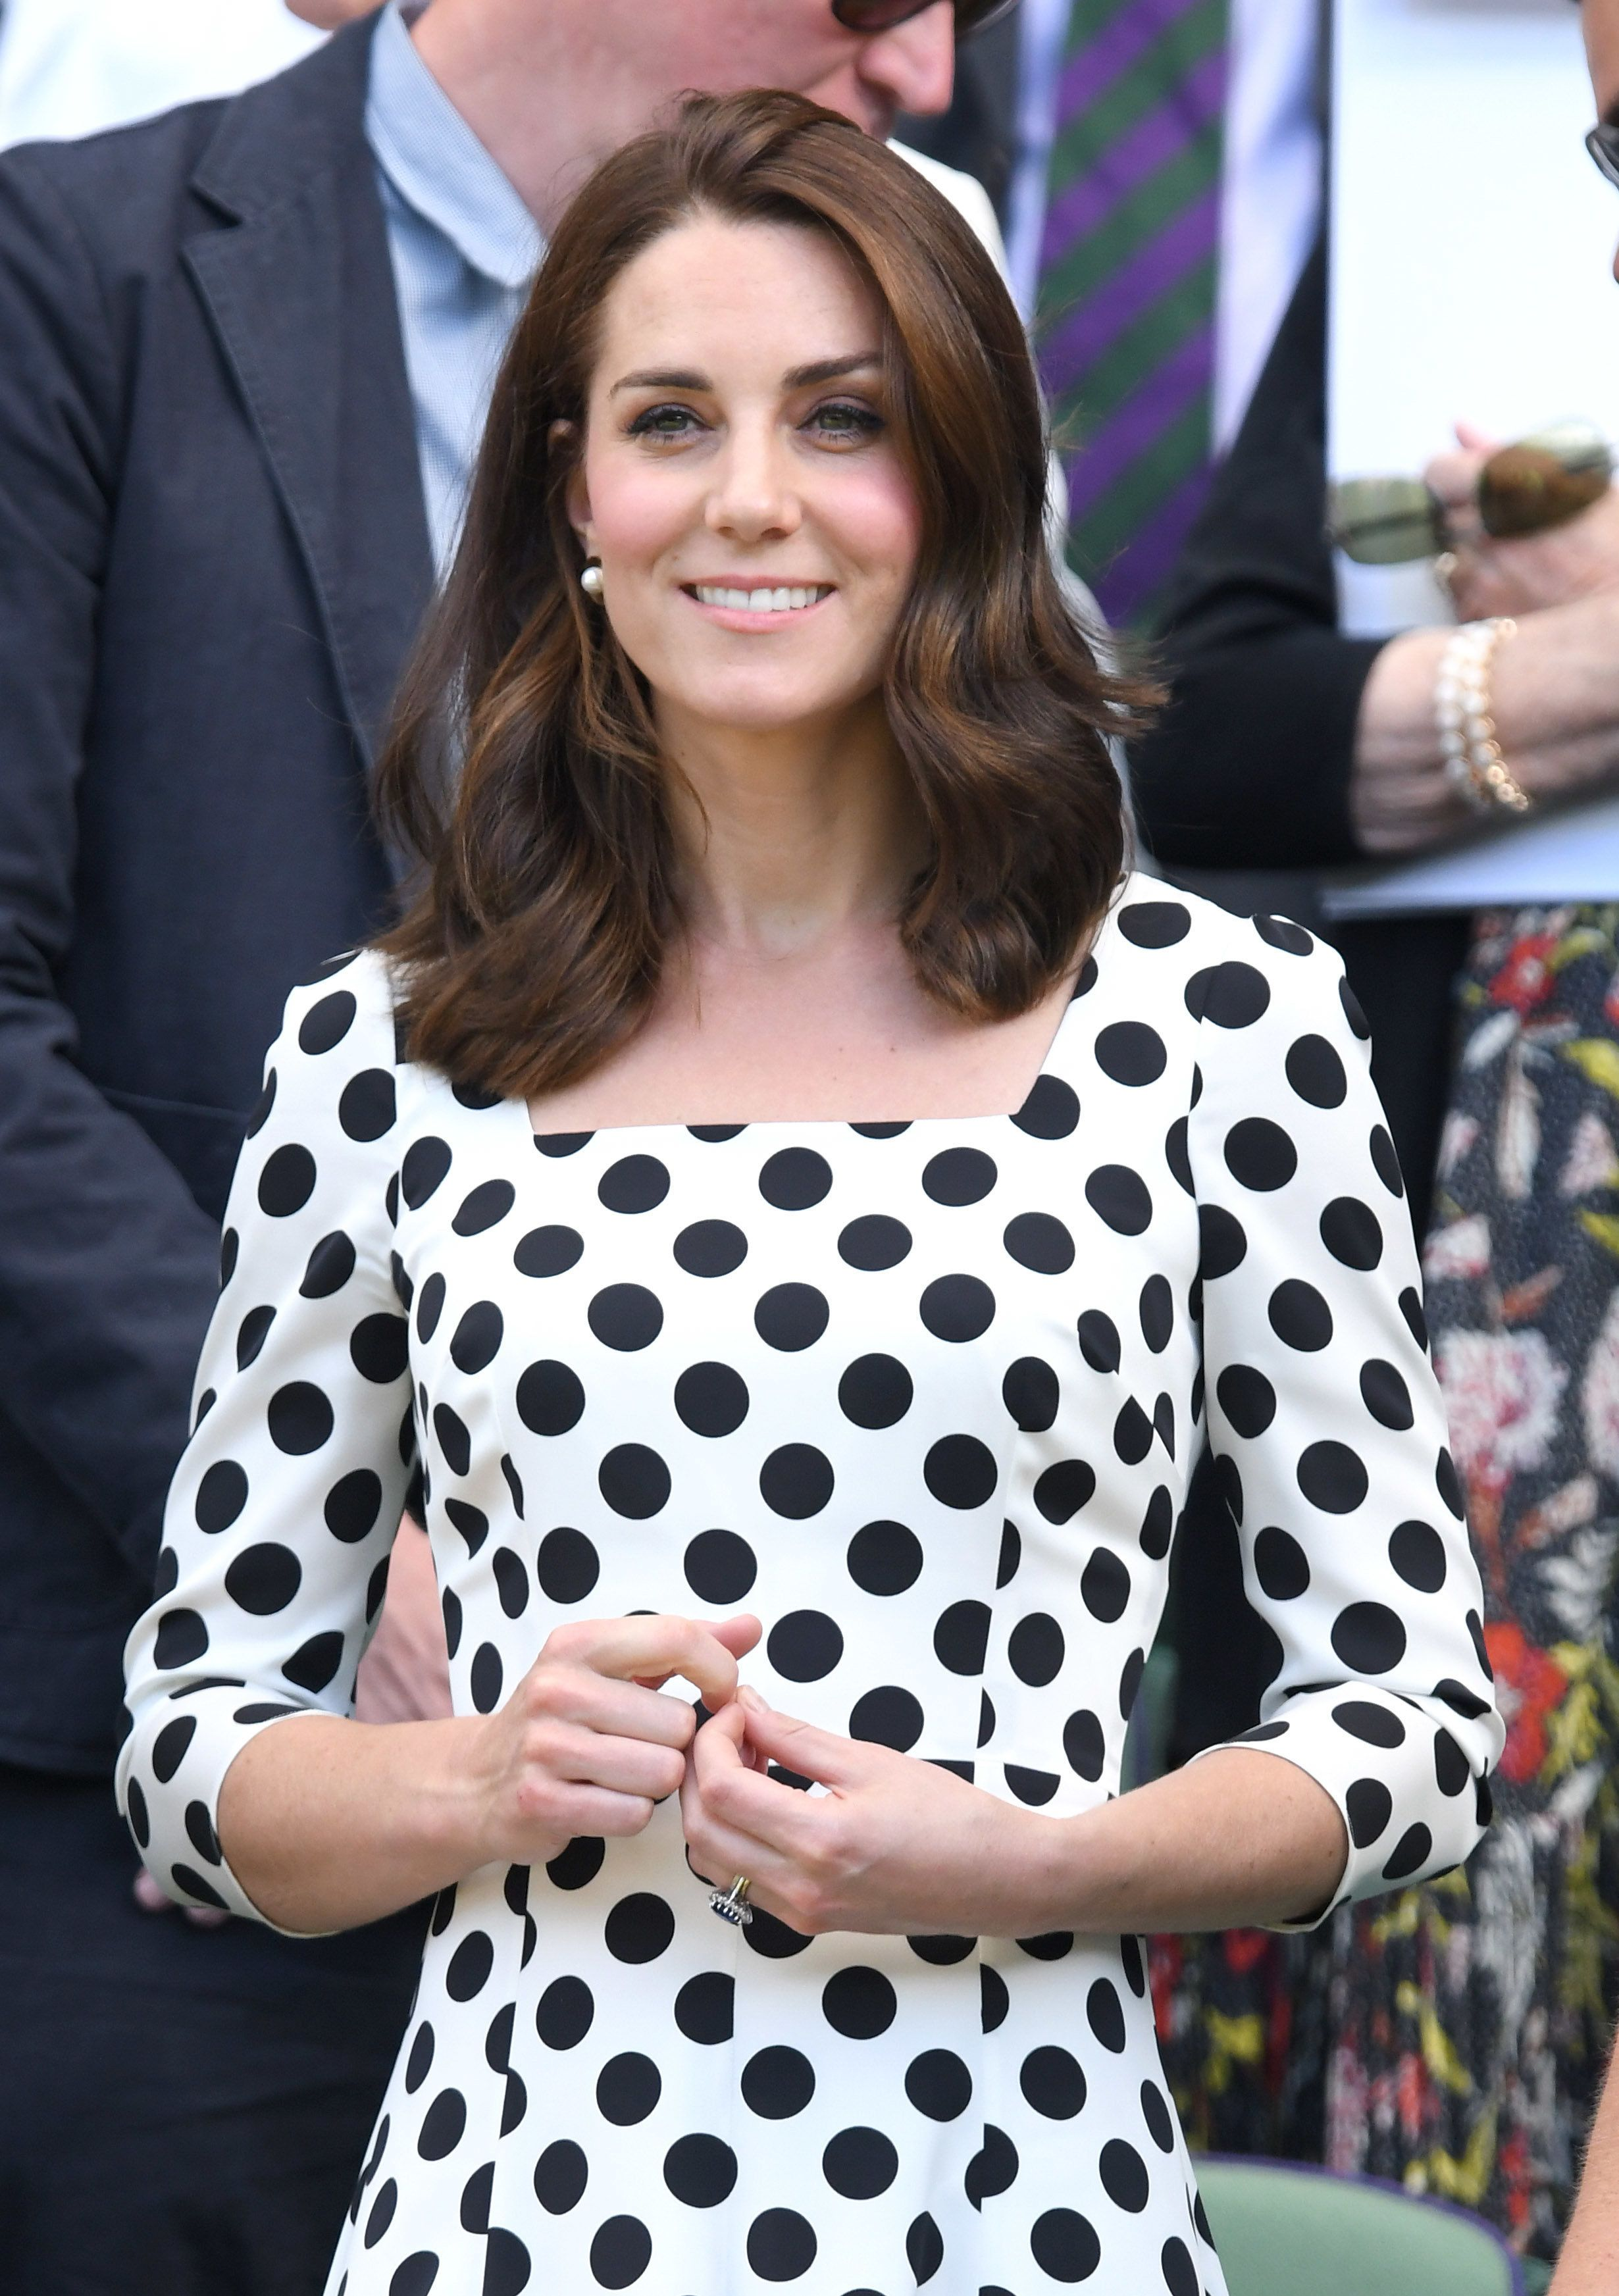 Duchess of Cambridge attends day one of the Wimbledon Tennis Championships at Wimbledon on 3 July